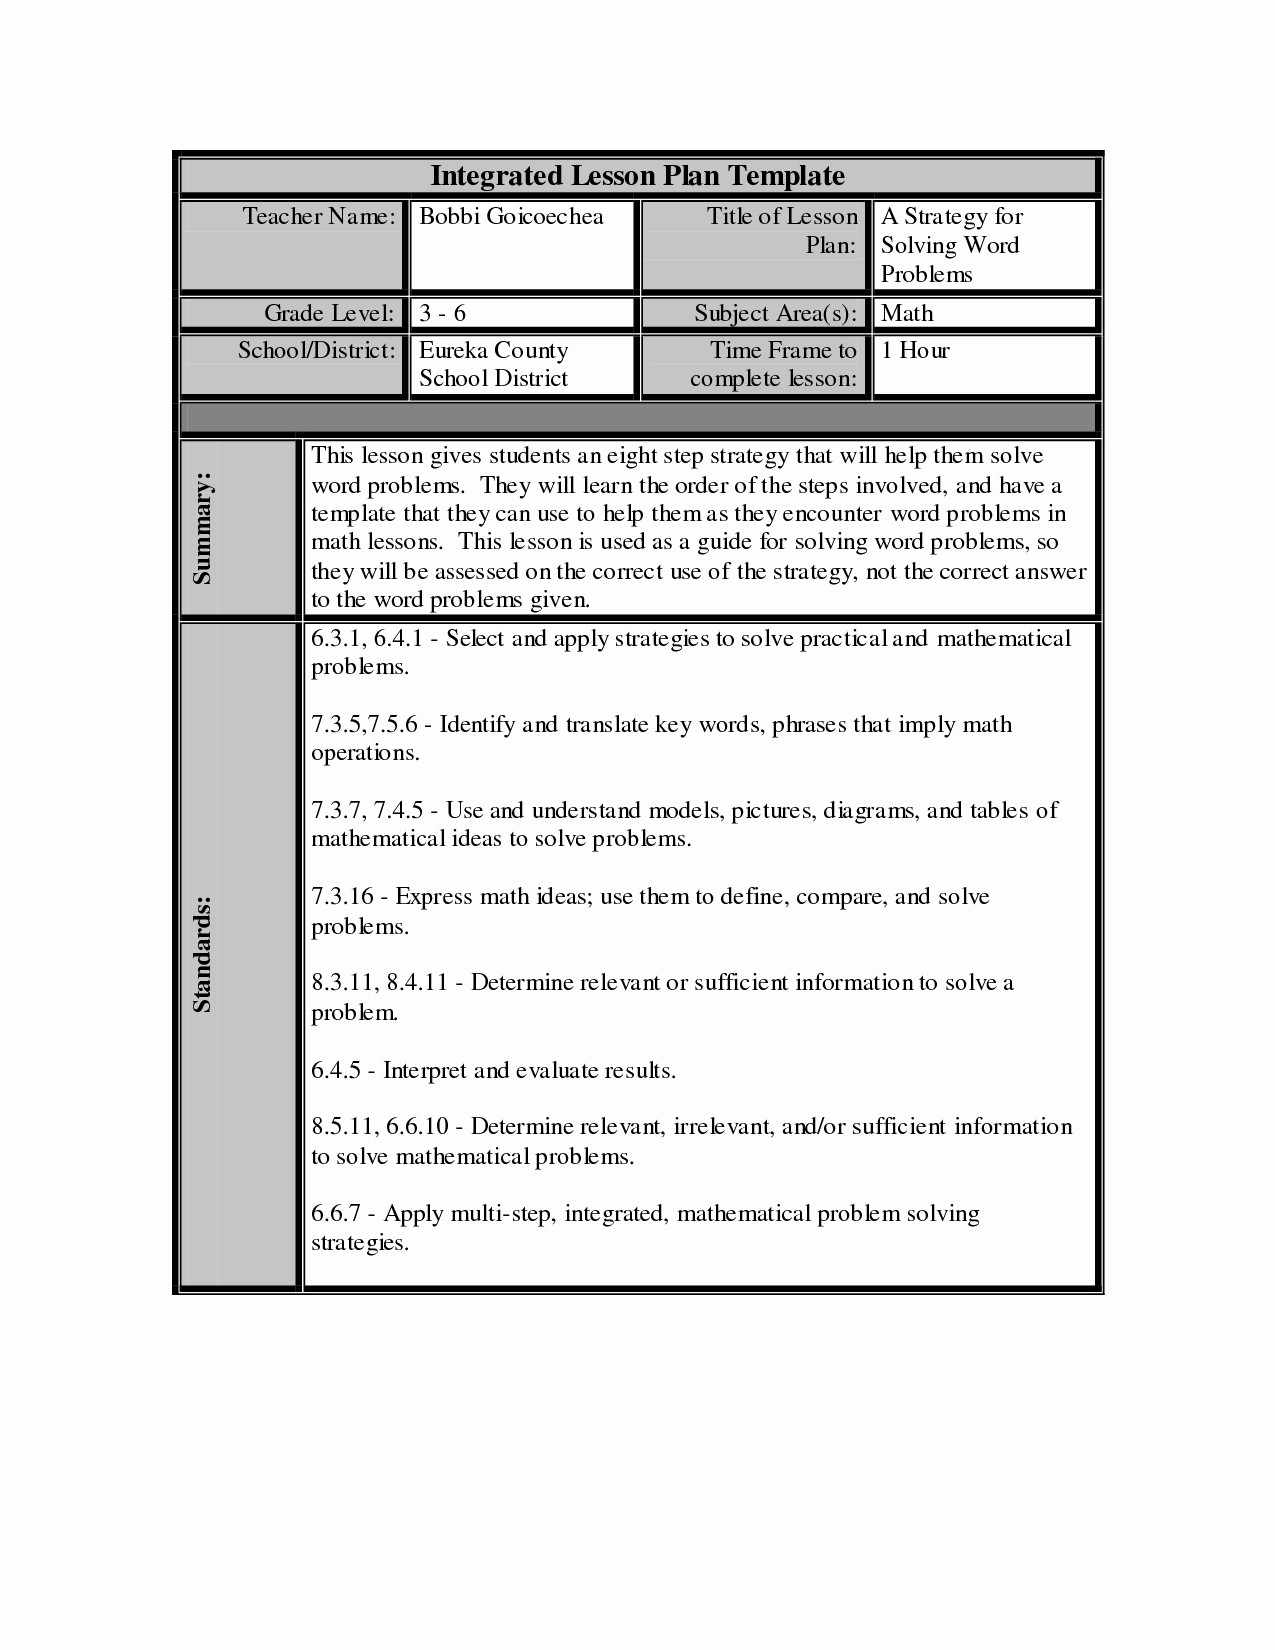 Lesson Plan Templates for Word Inspirational Lesson Plan Template Word